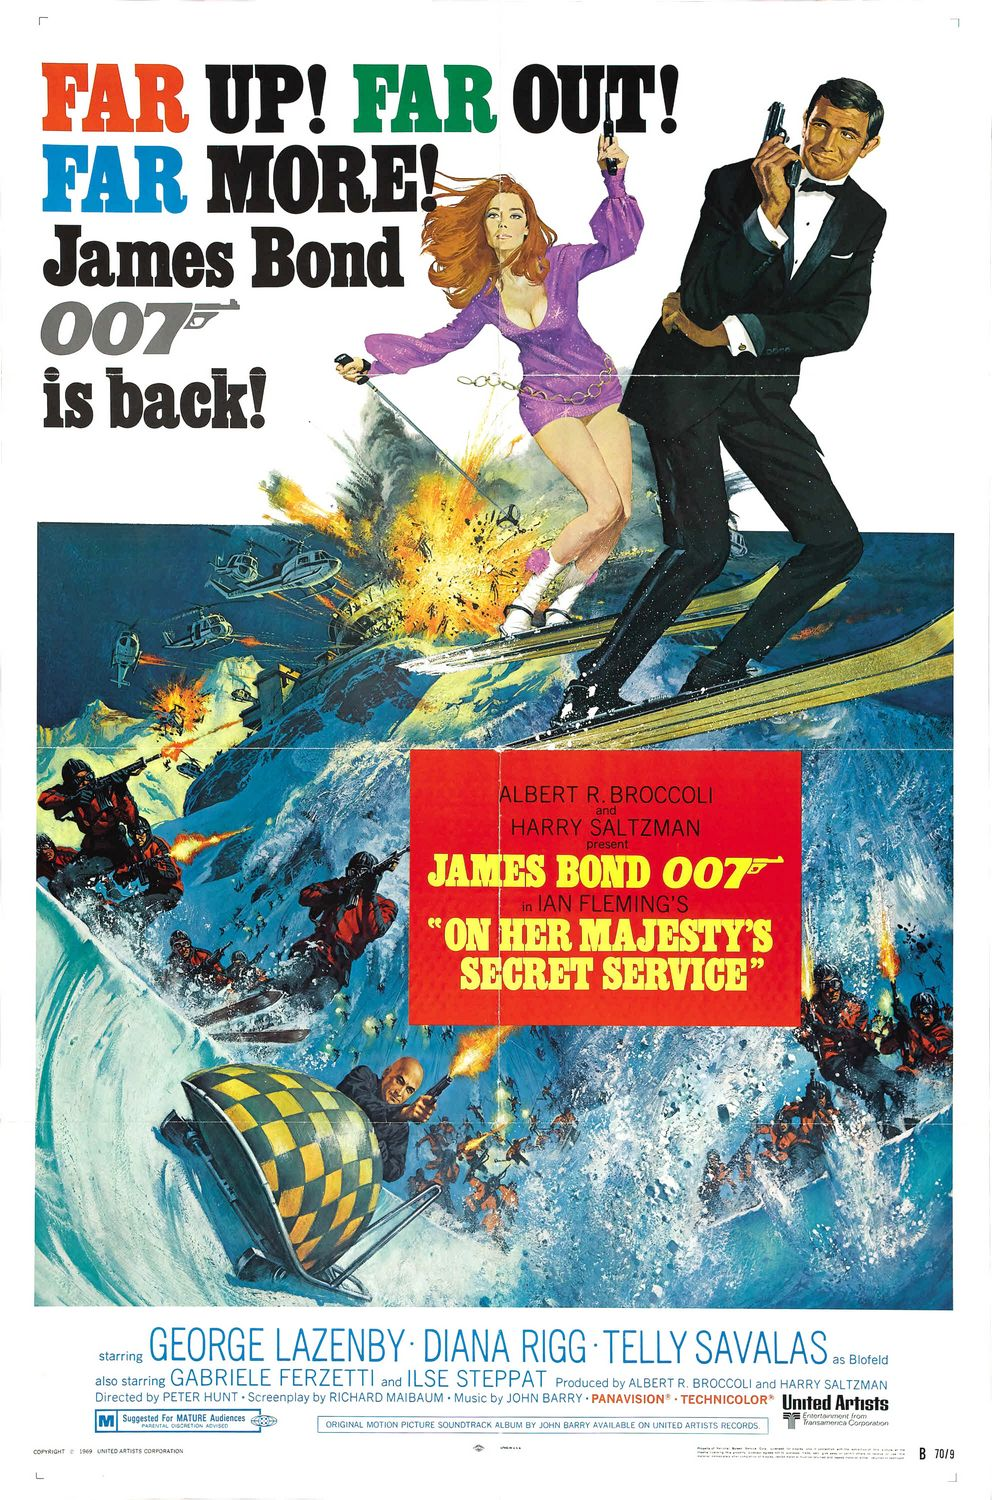 James Bond Archives 2017 For Your Eyes Only Throwback Chase Card #9